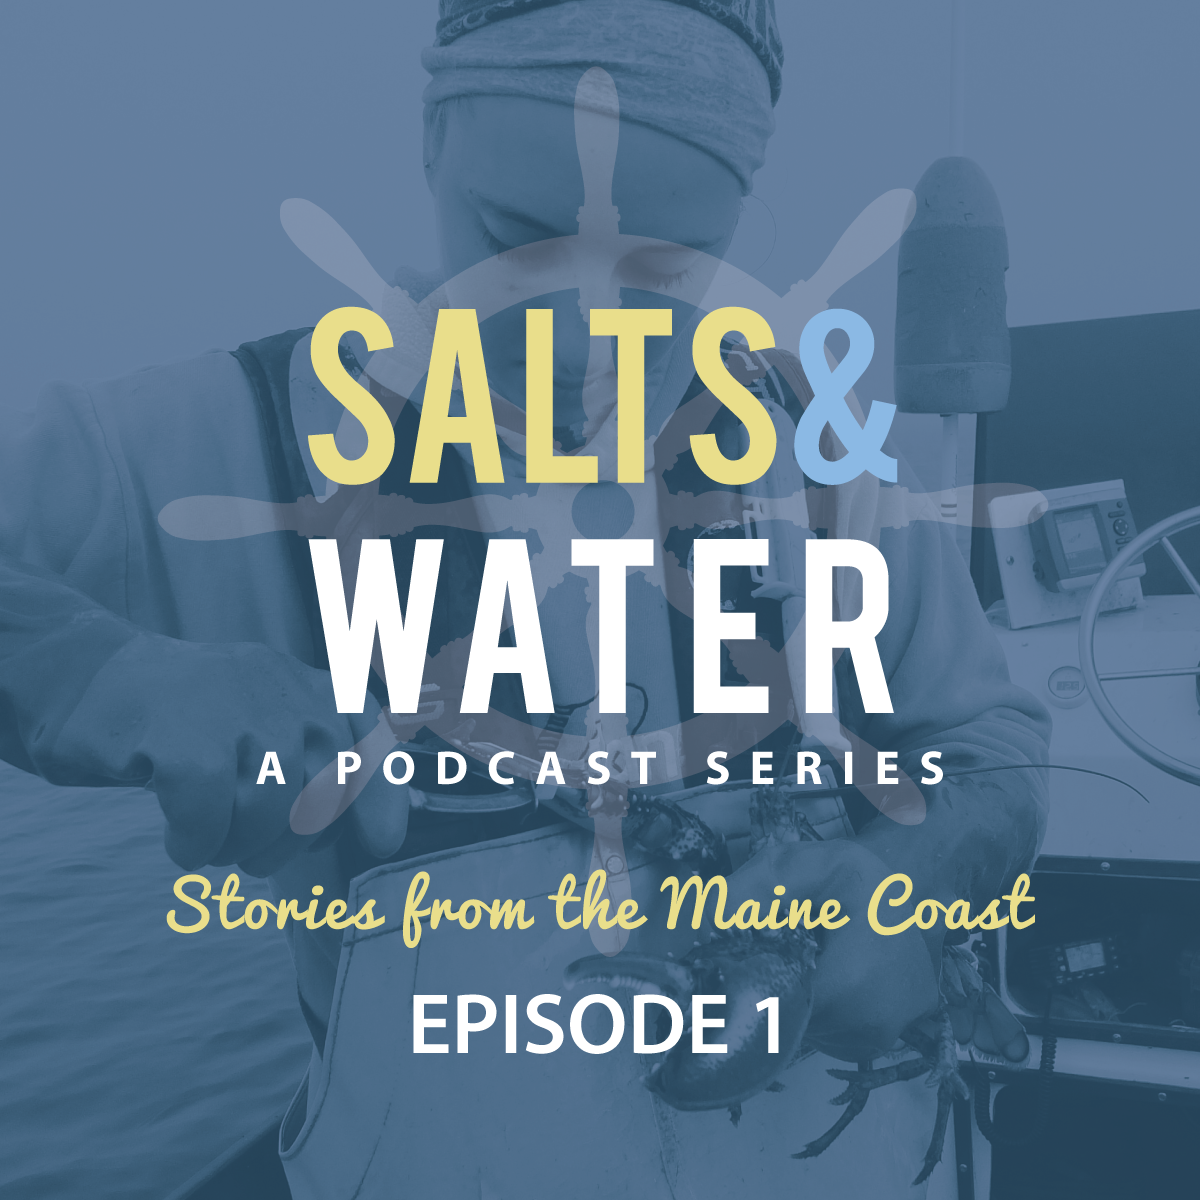 SALTS-AND-WATER-EPISODE-1